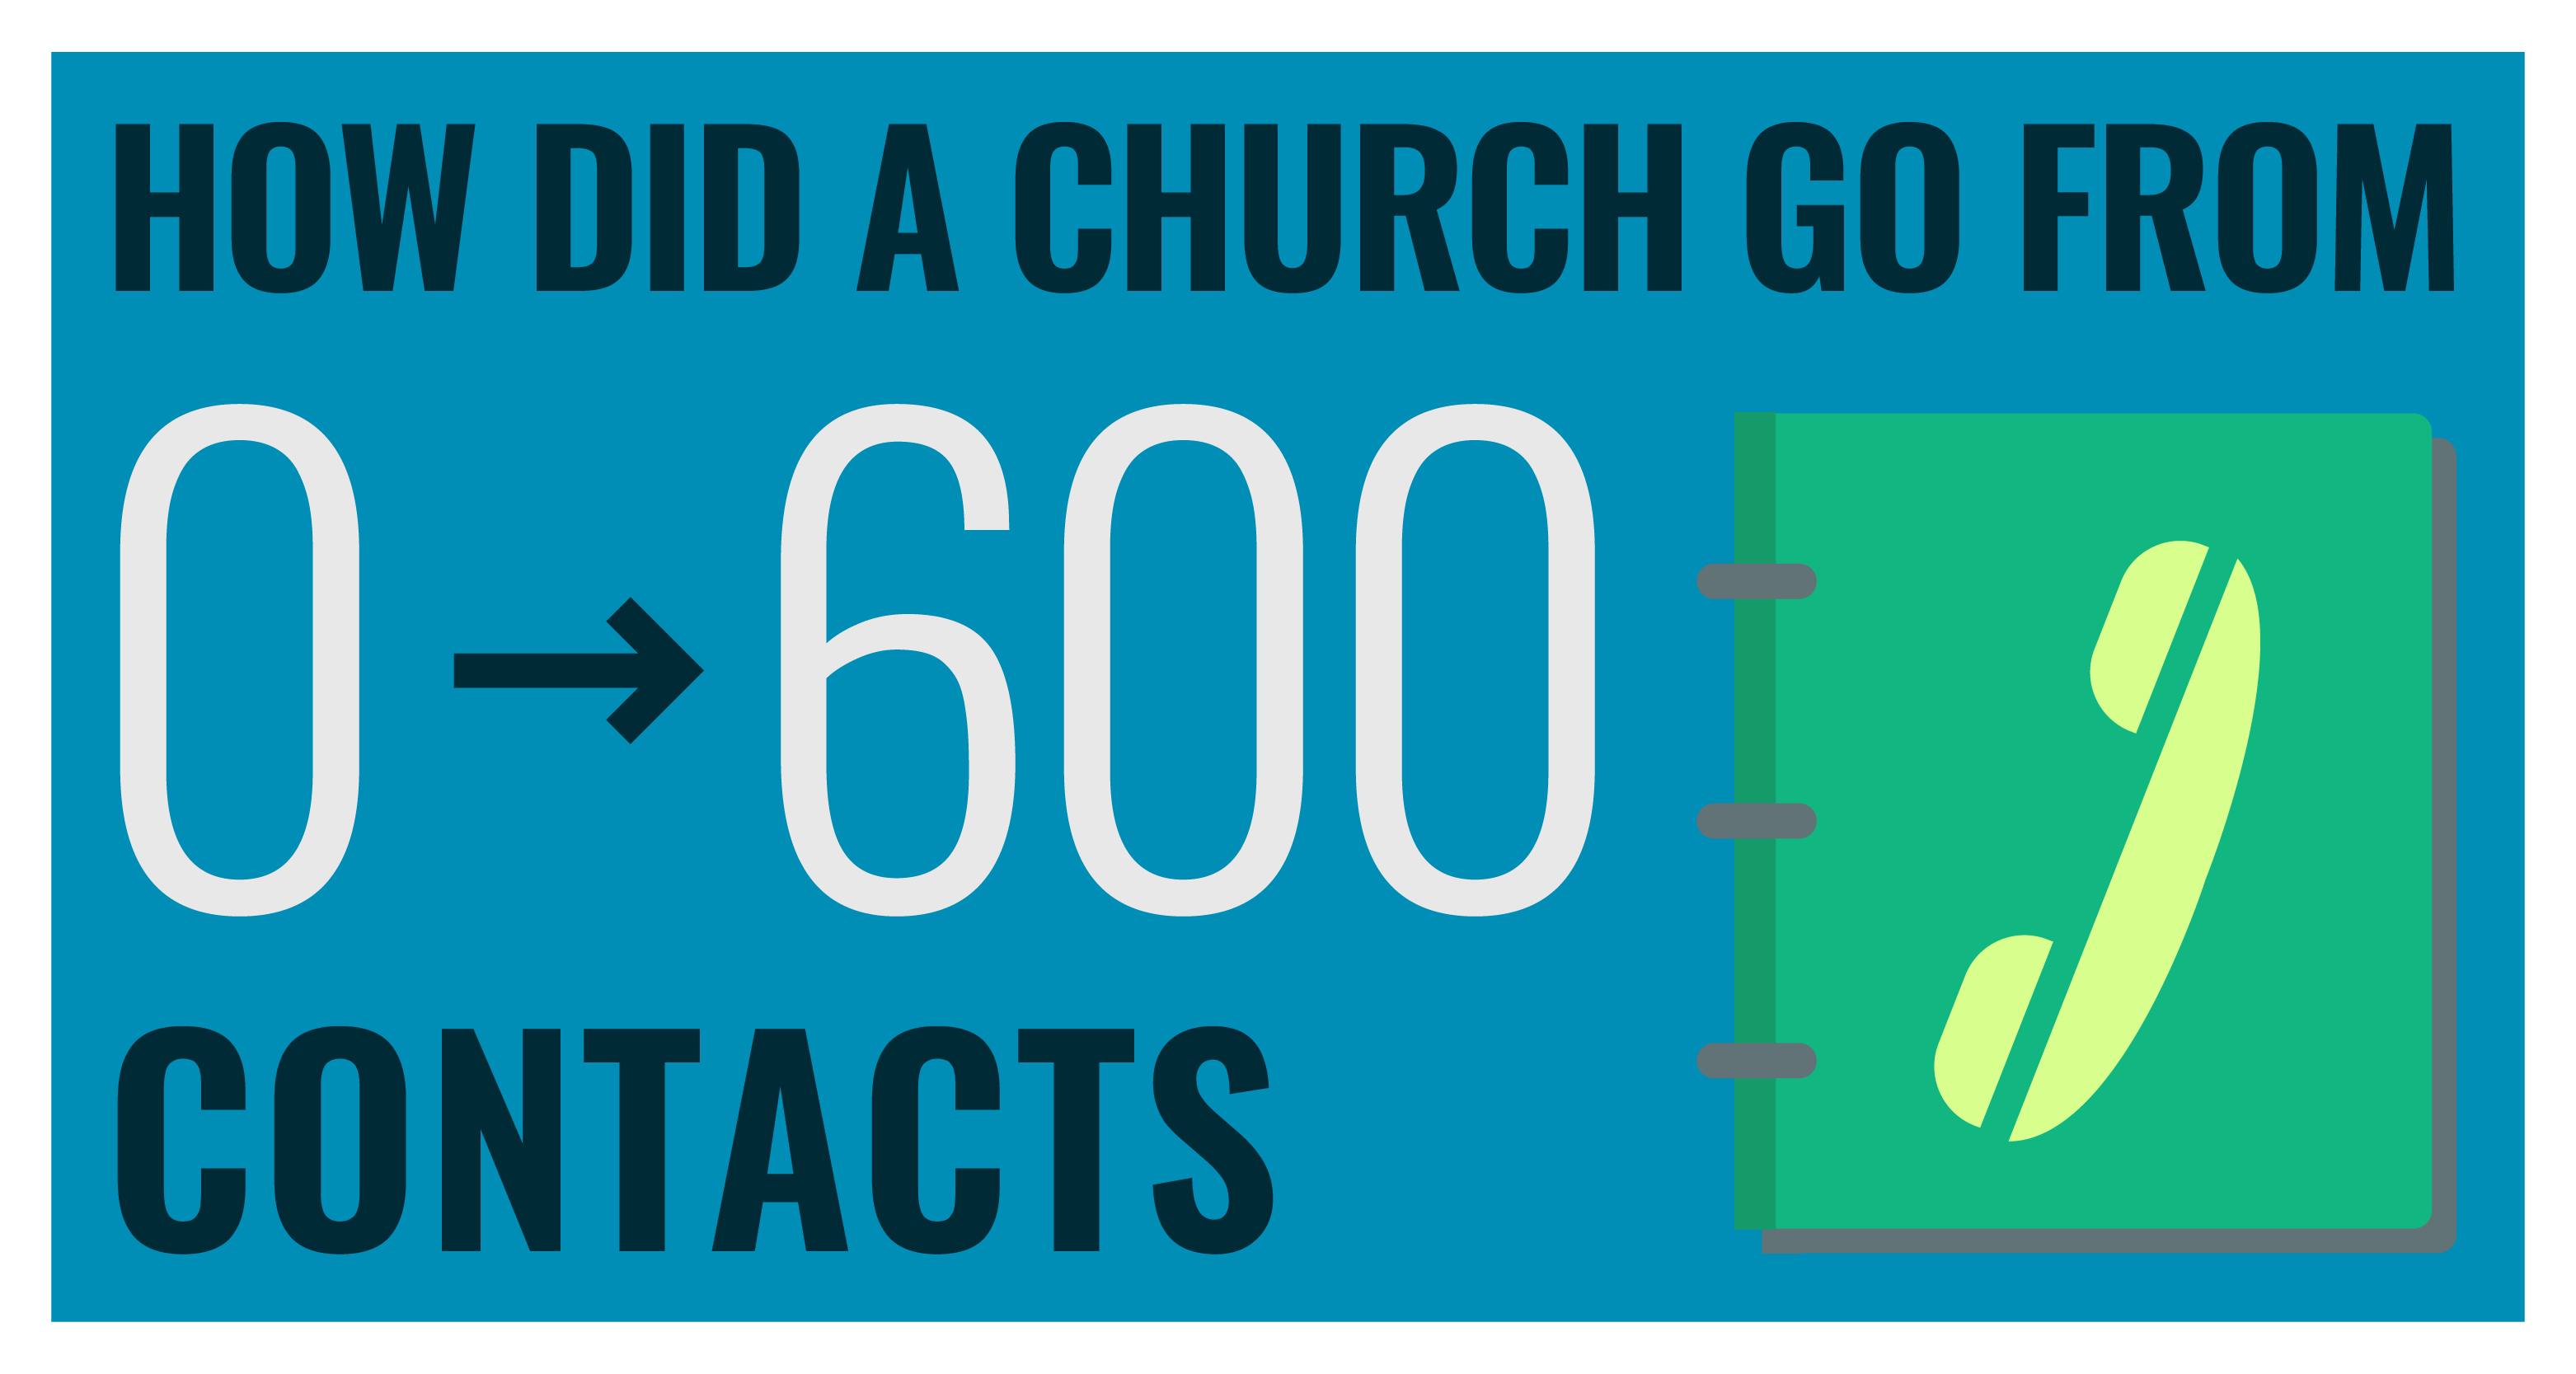 [Infographic] How a church went from 0 to 600 contacts